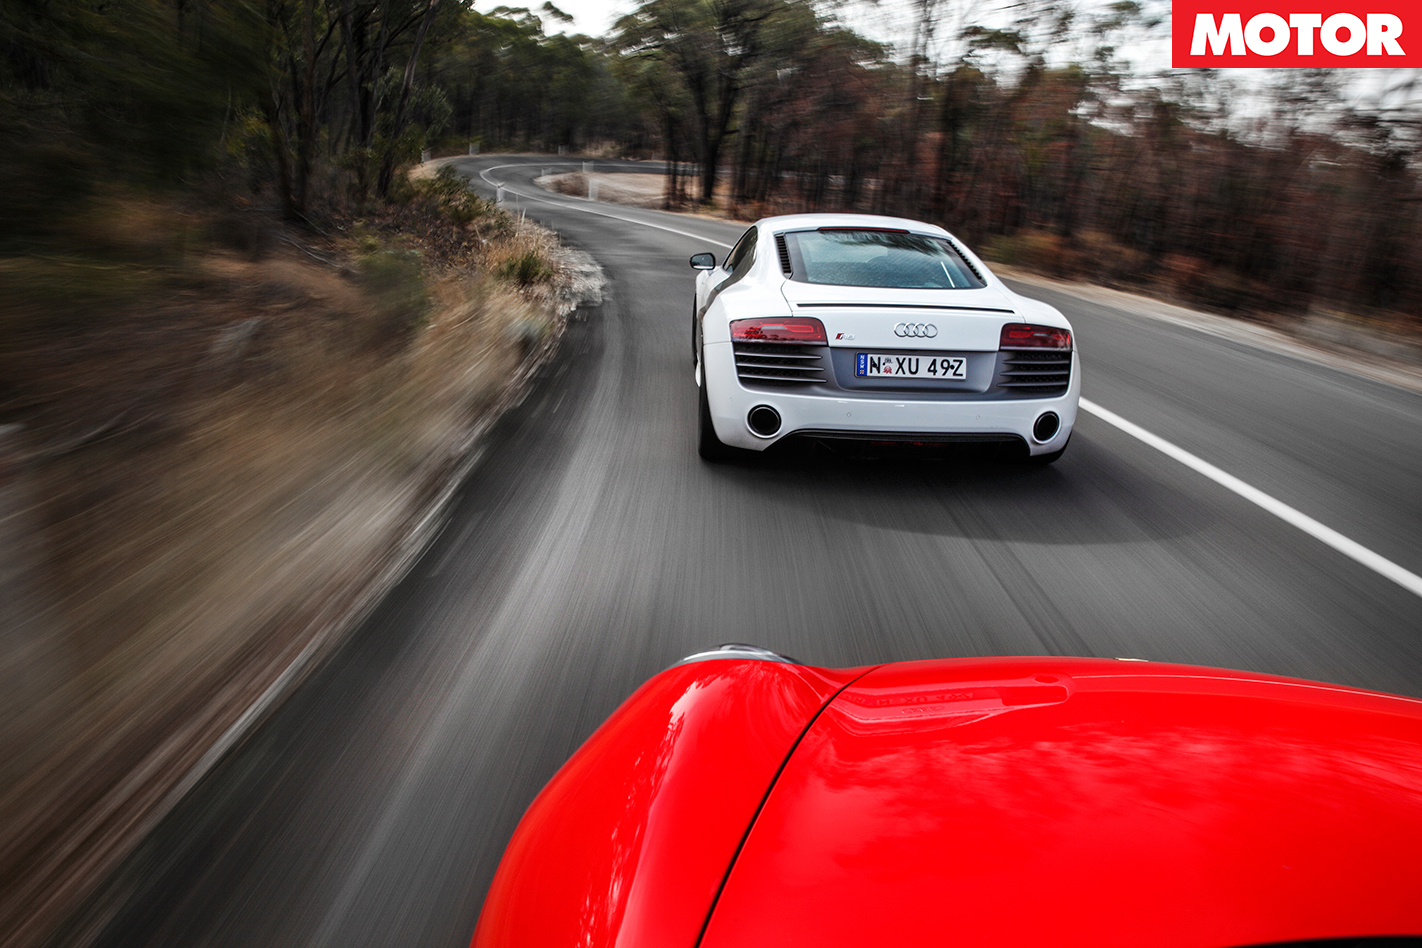 Porsche 911 Turbo vs Audi R8 V10 Plus